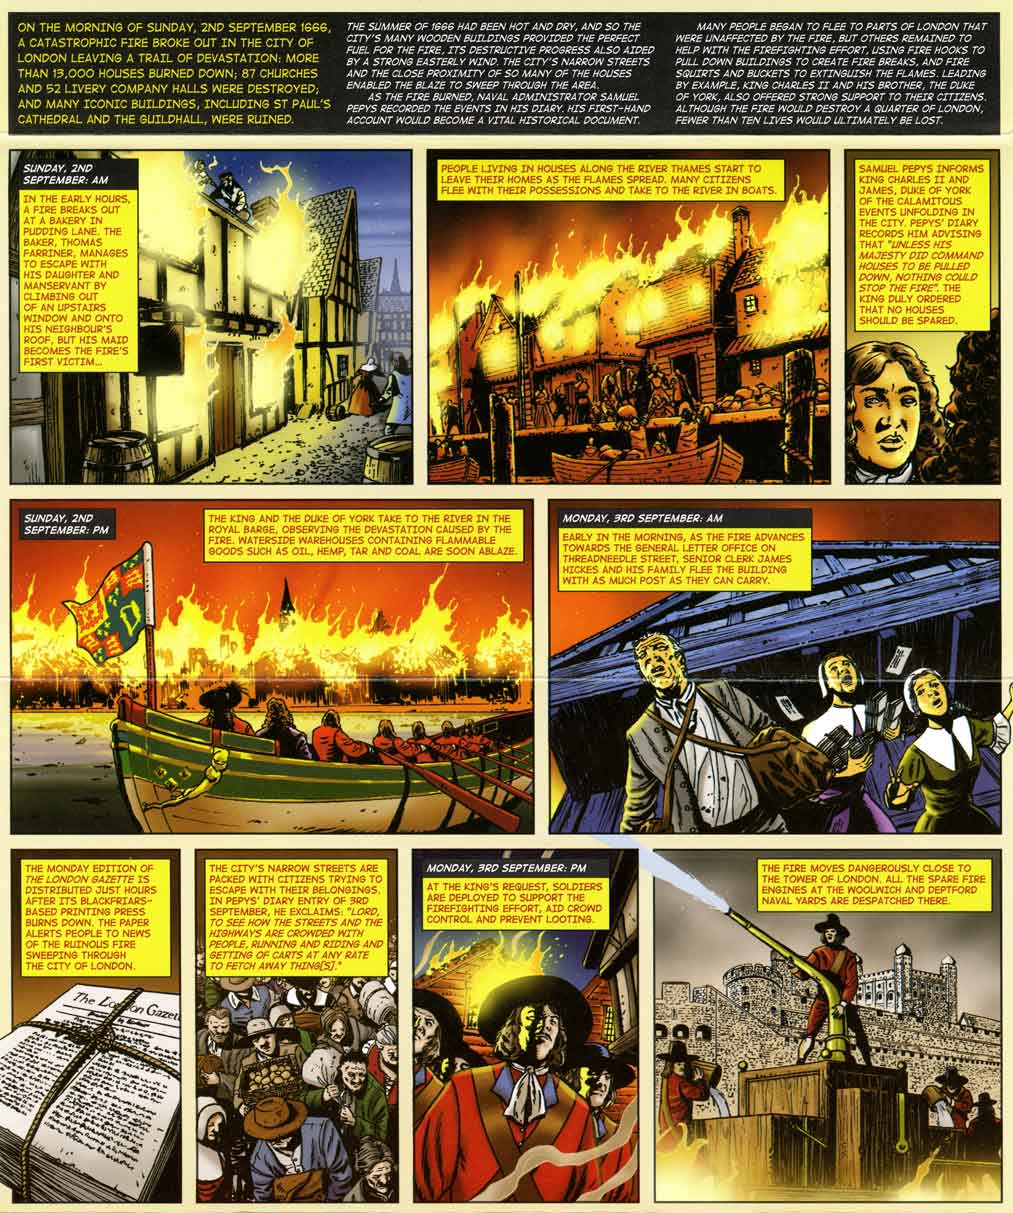 The illustrated graphic novel of the story of the Great Fire of London within the issued presentation pack.